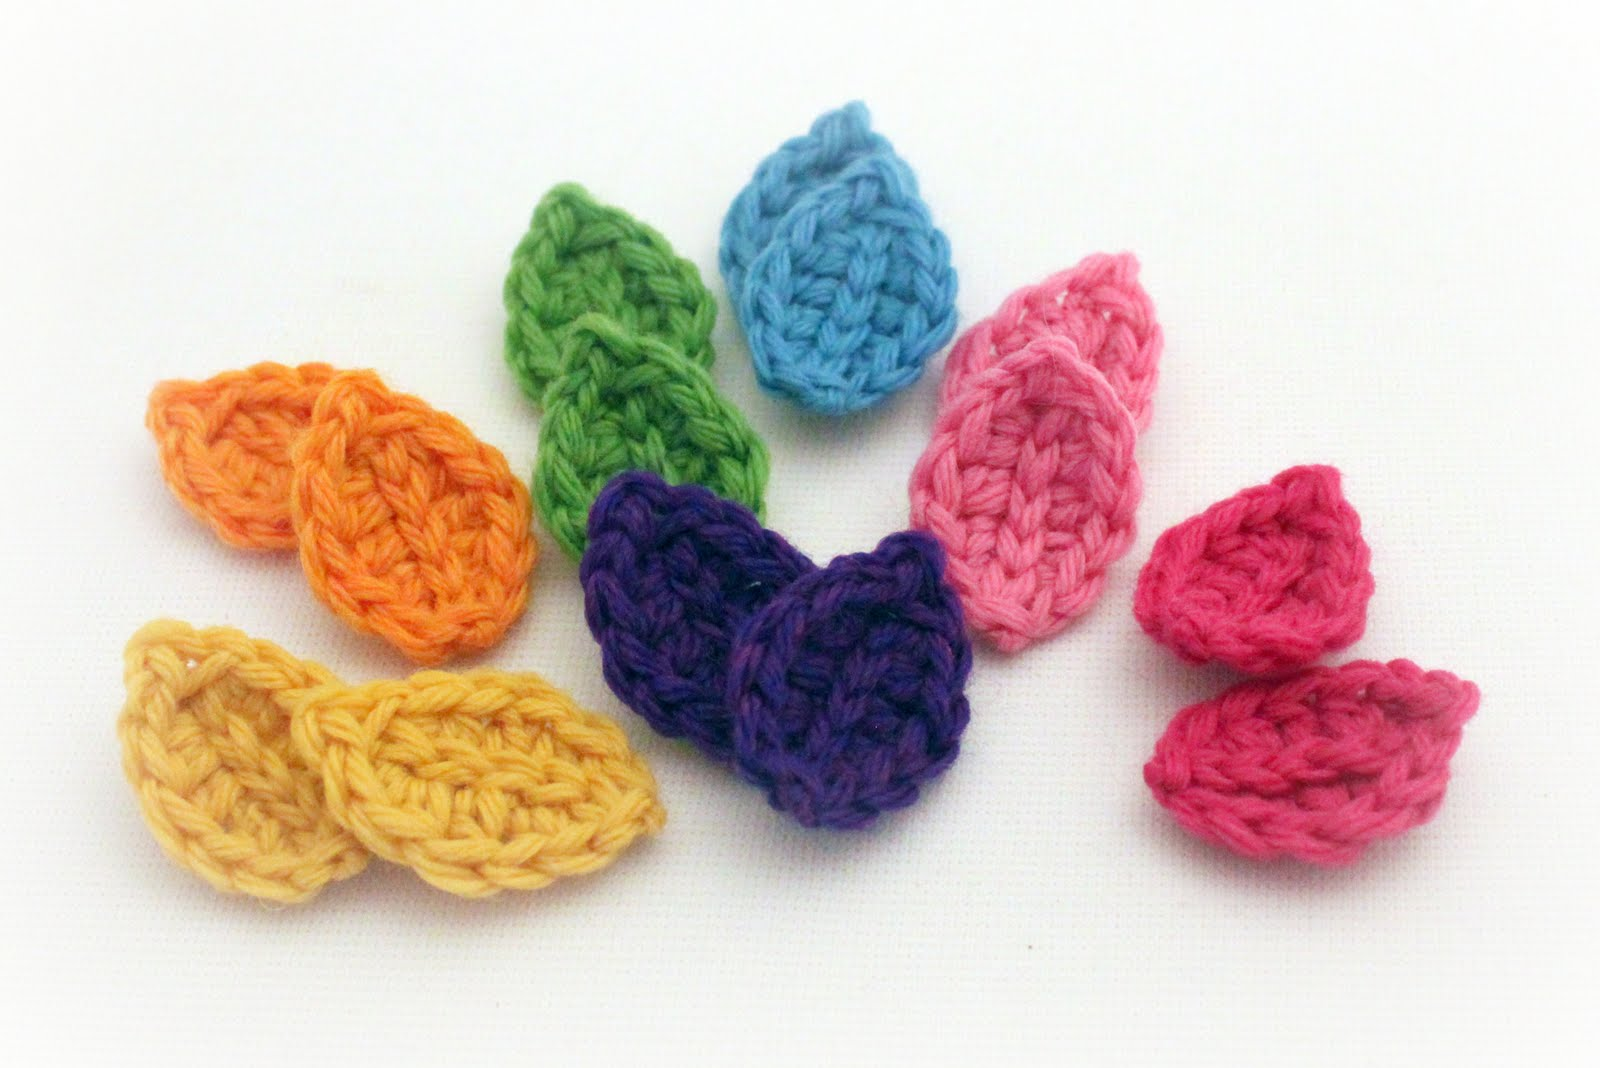 Free Crochet Leaf Scarf Pattern : !!!IMPORTANT!!! All content has been moved to MAMACHEE.COM ...